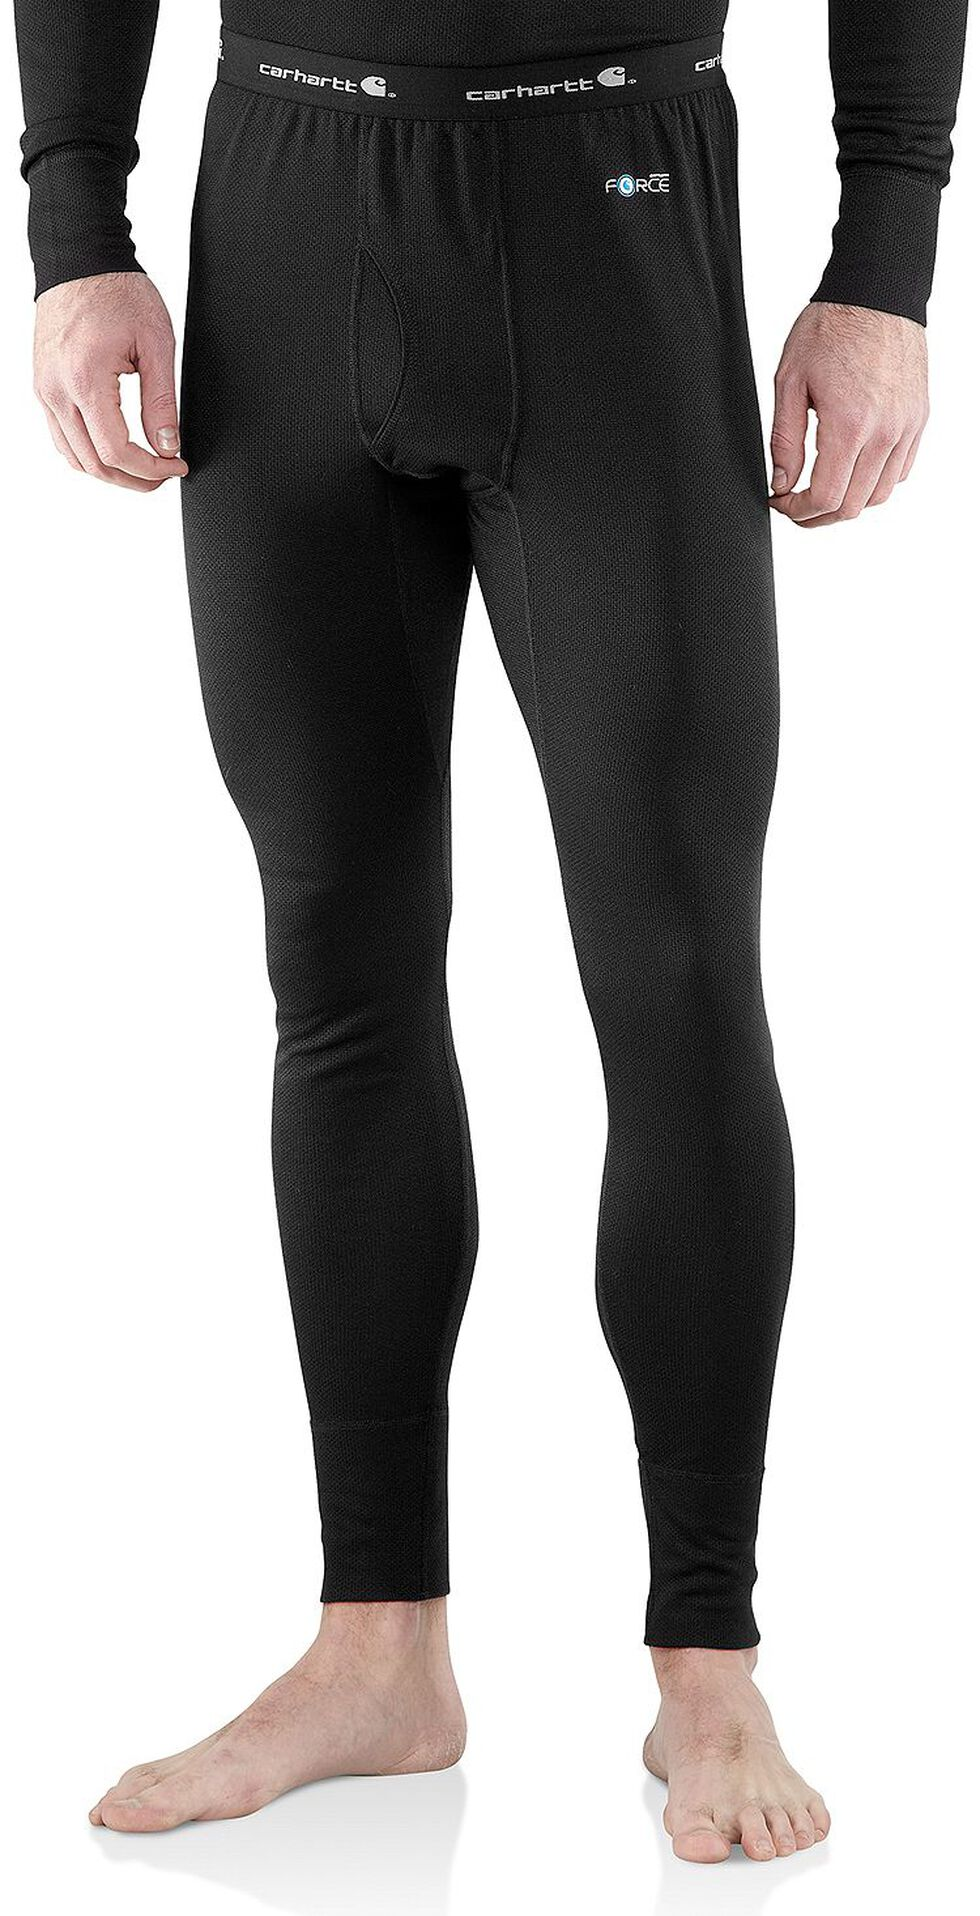 Carhartt Base Force Cold Weather Midweight Underwear - Big & Tall, Black, hi-res